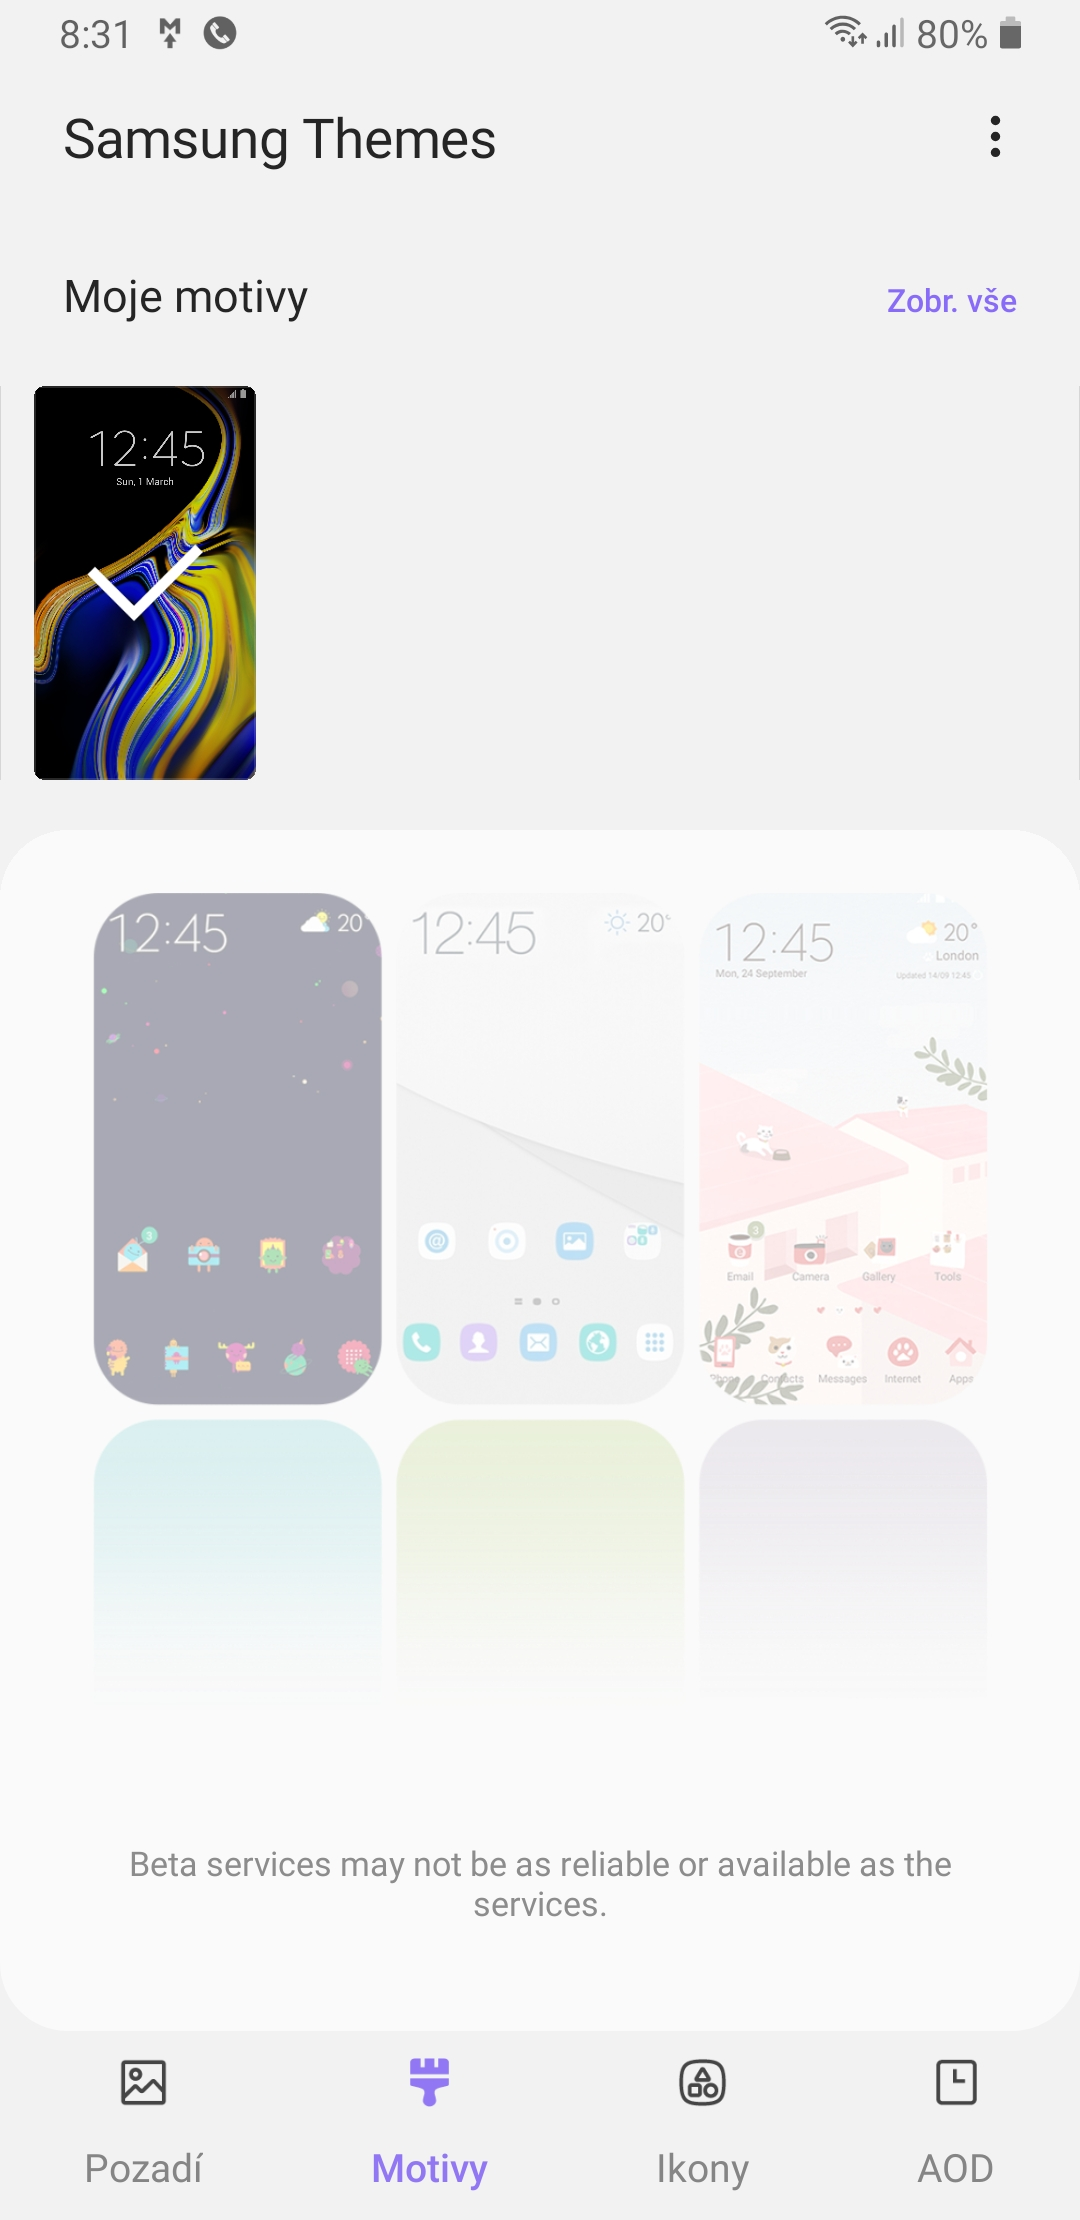 Screenshot_20181210-083154_Samsung Themes.jpg